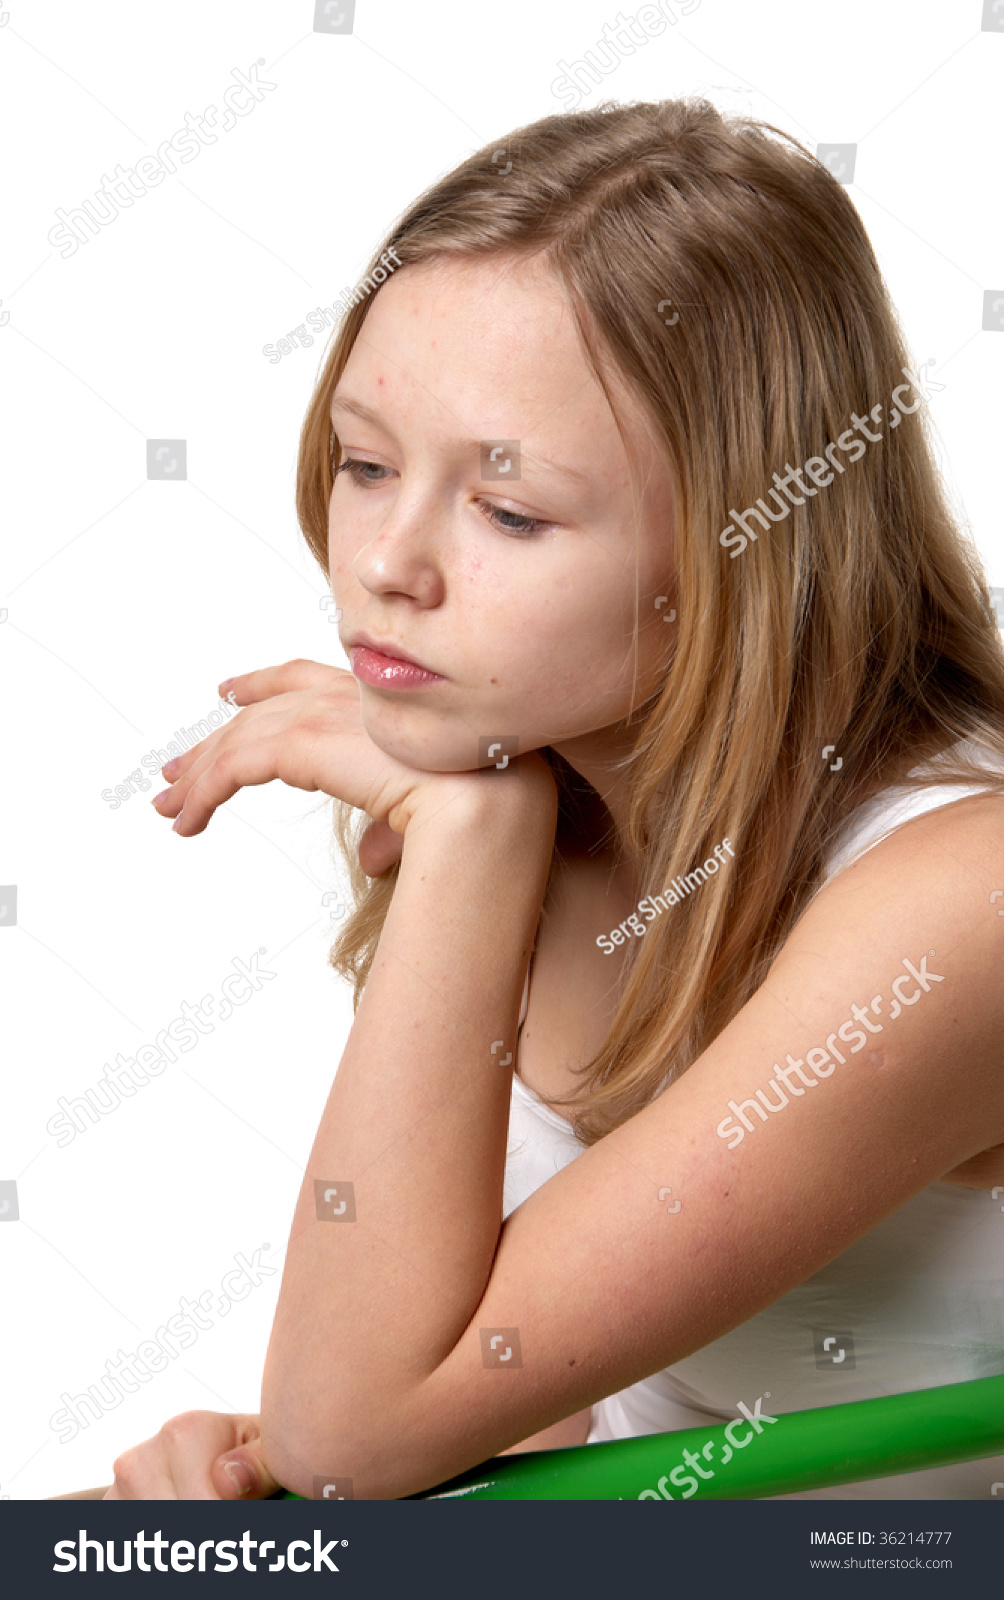 Sad Girl Sitting Alone Outside Stock Photos Sad Girl: Sad Little Girl Sitting On A Green Chair On A Light